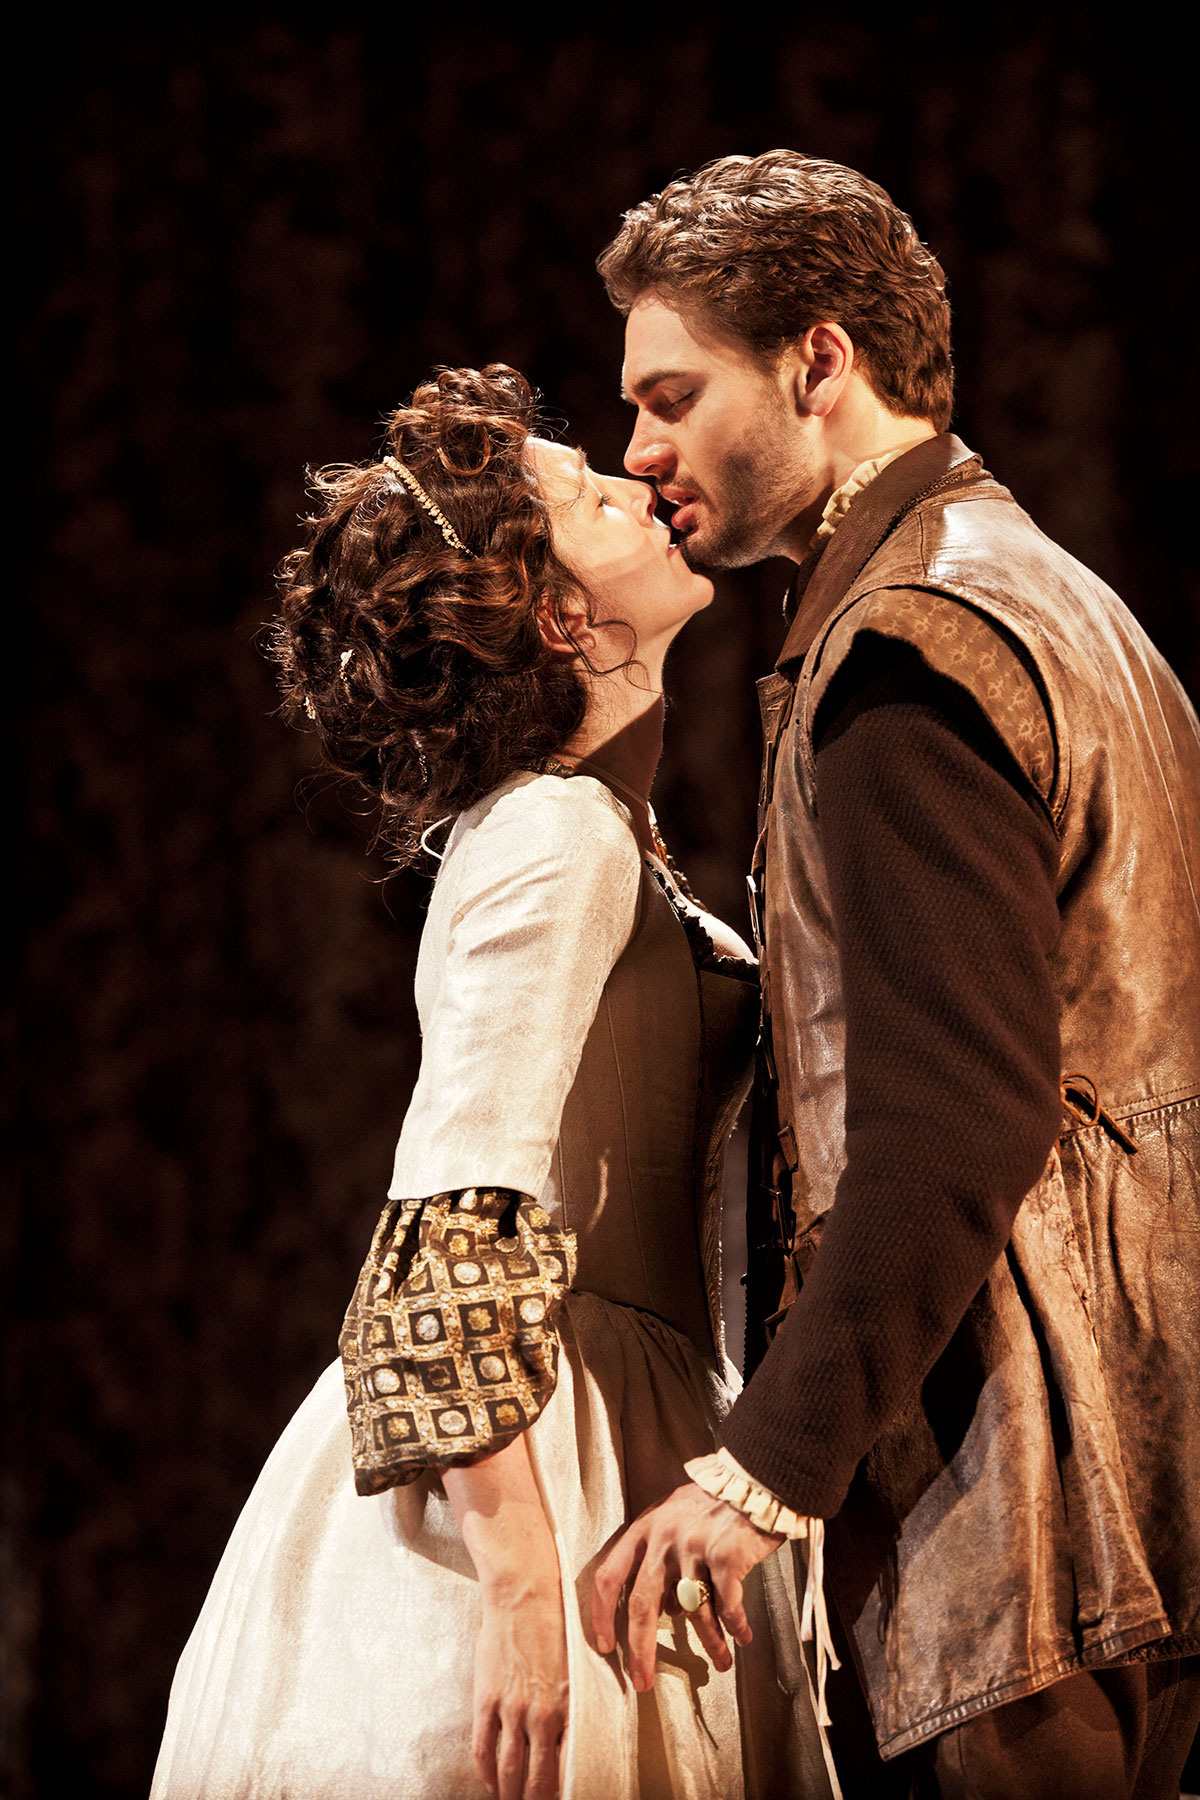 The Duchess of Malfi review – so bloody you need a blanket